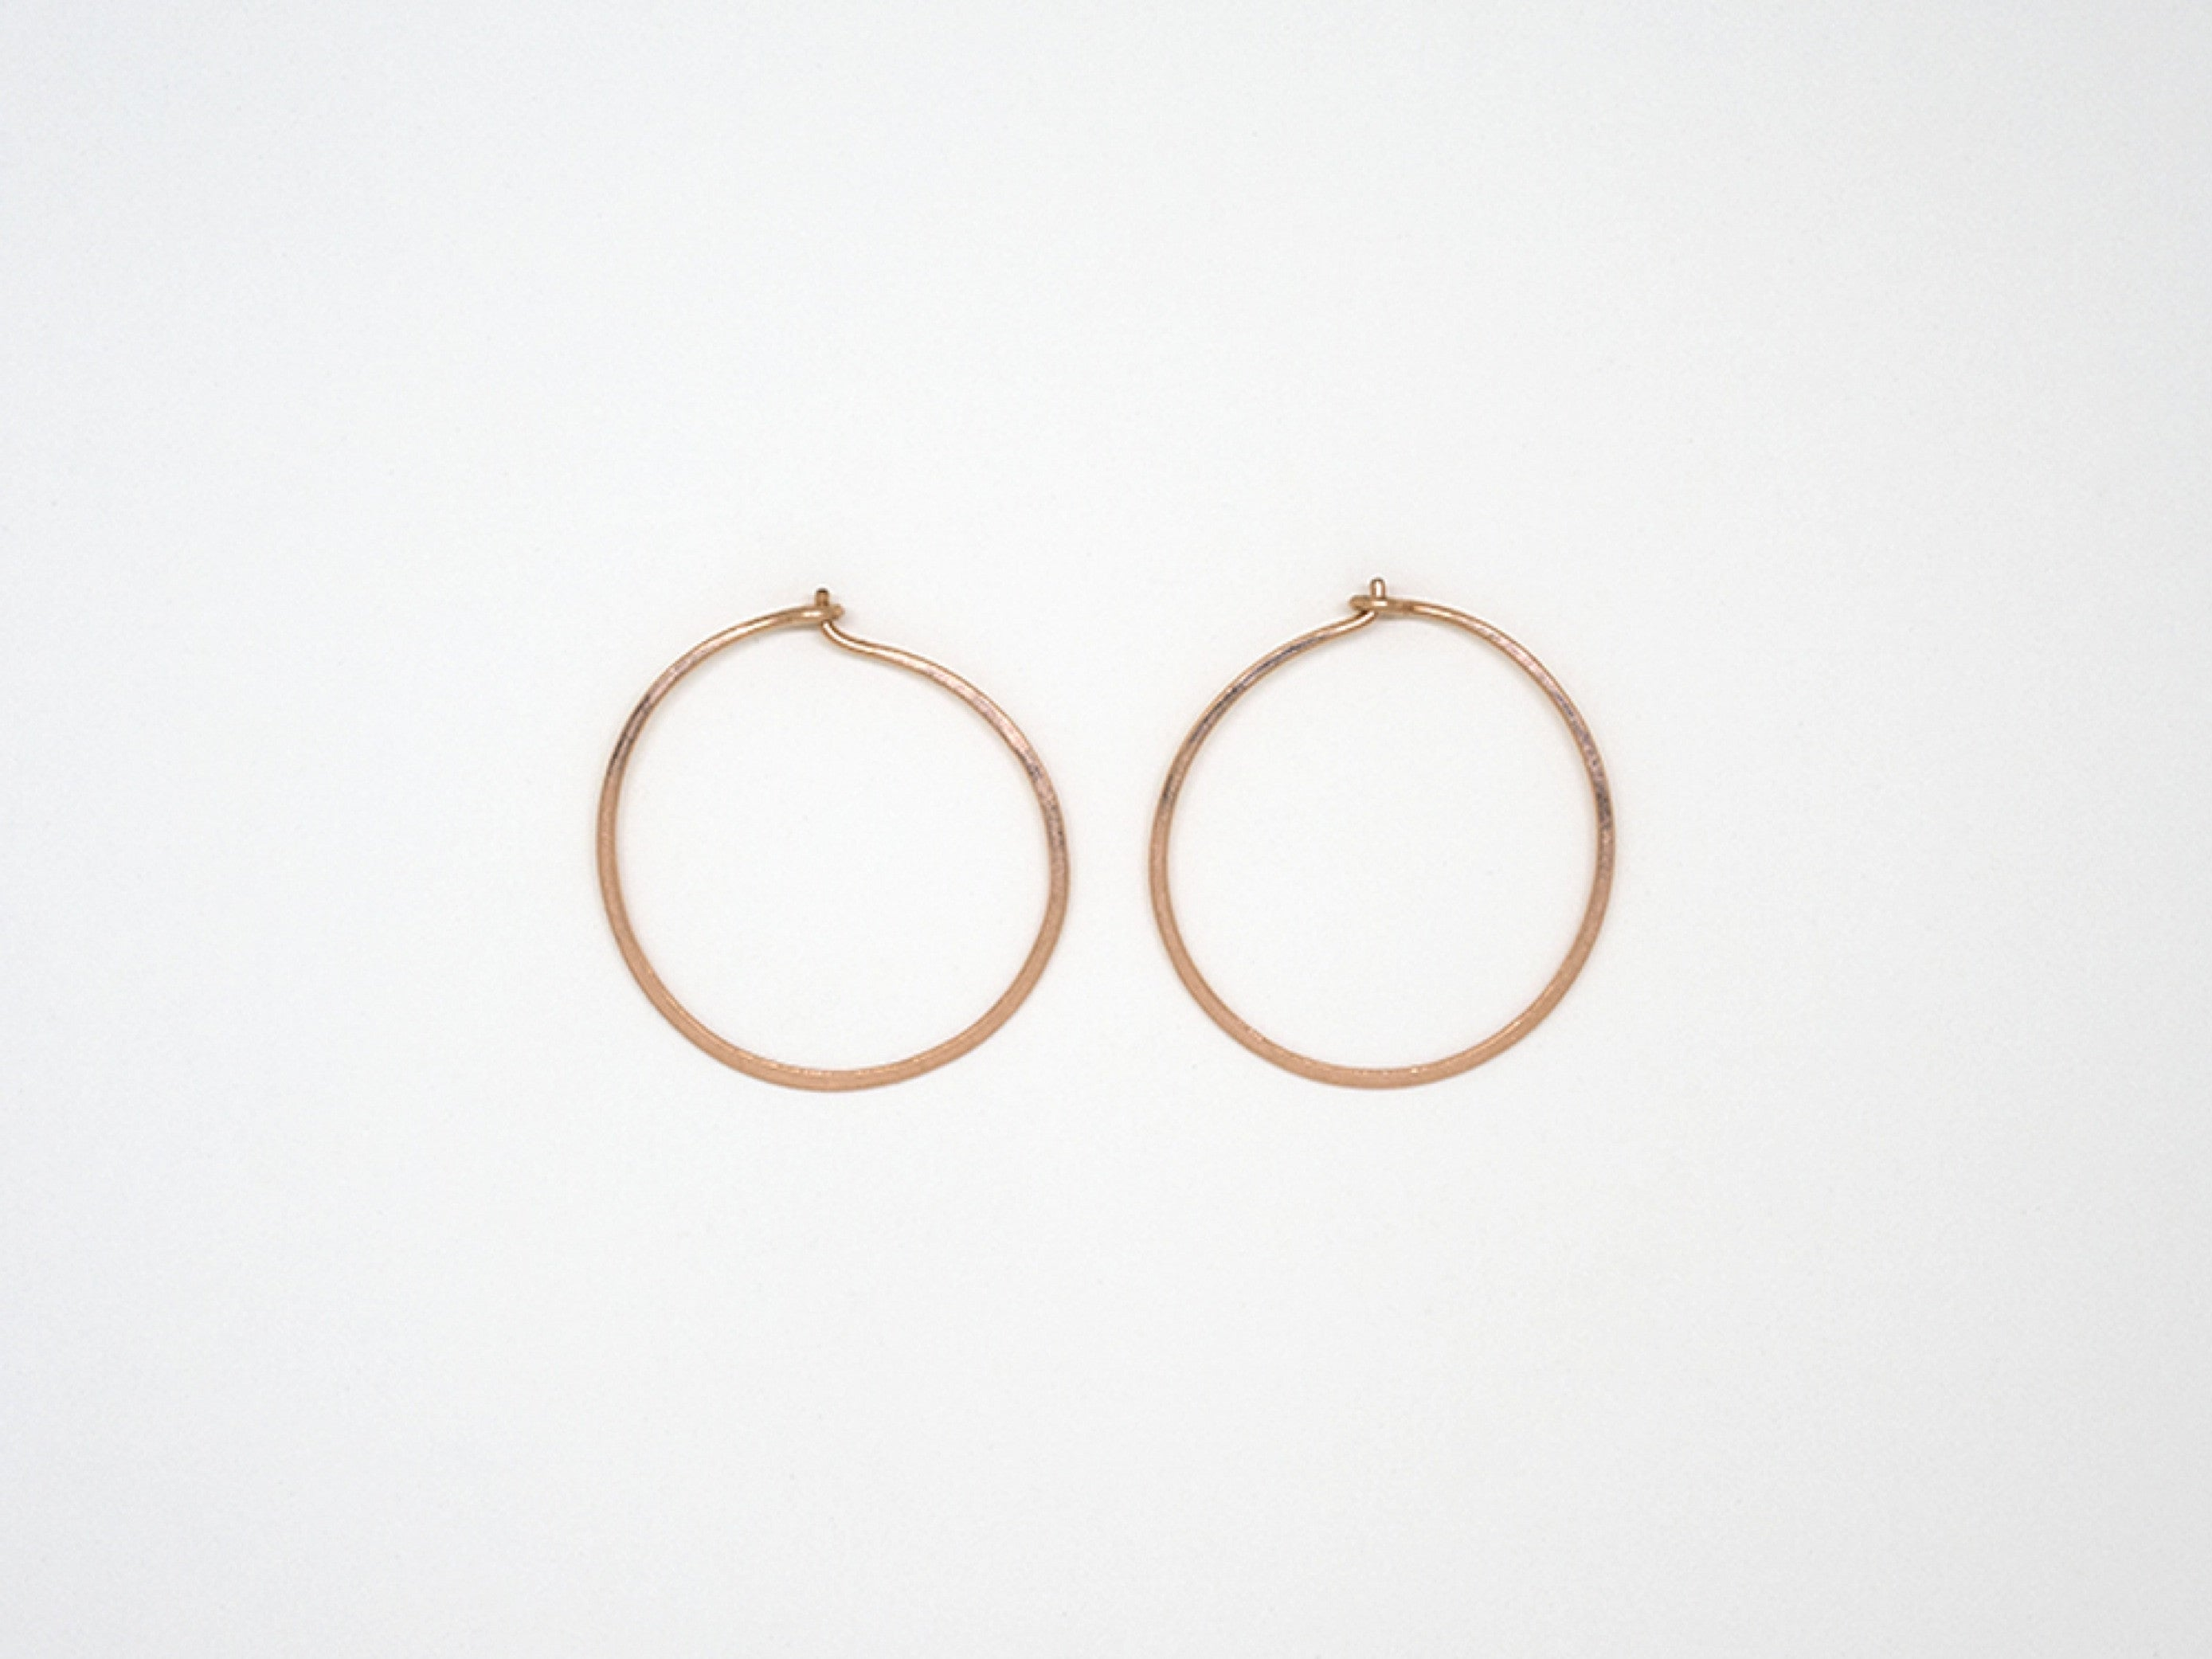 Small Rose Gold Round Hoops - E1689